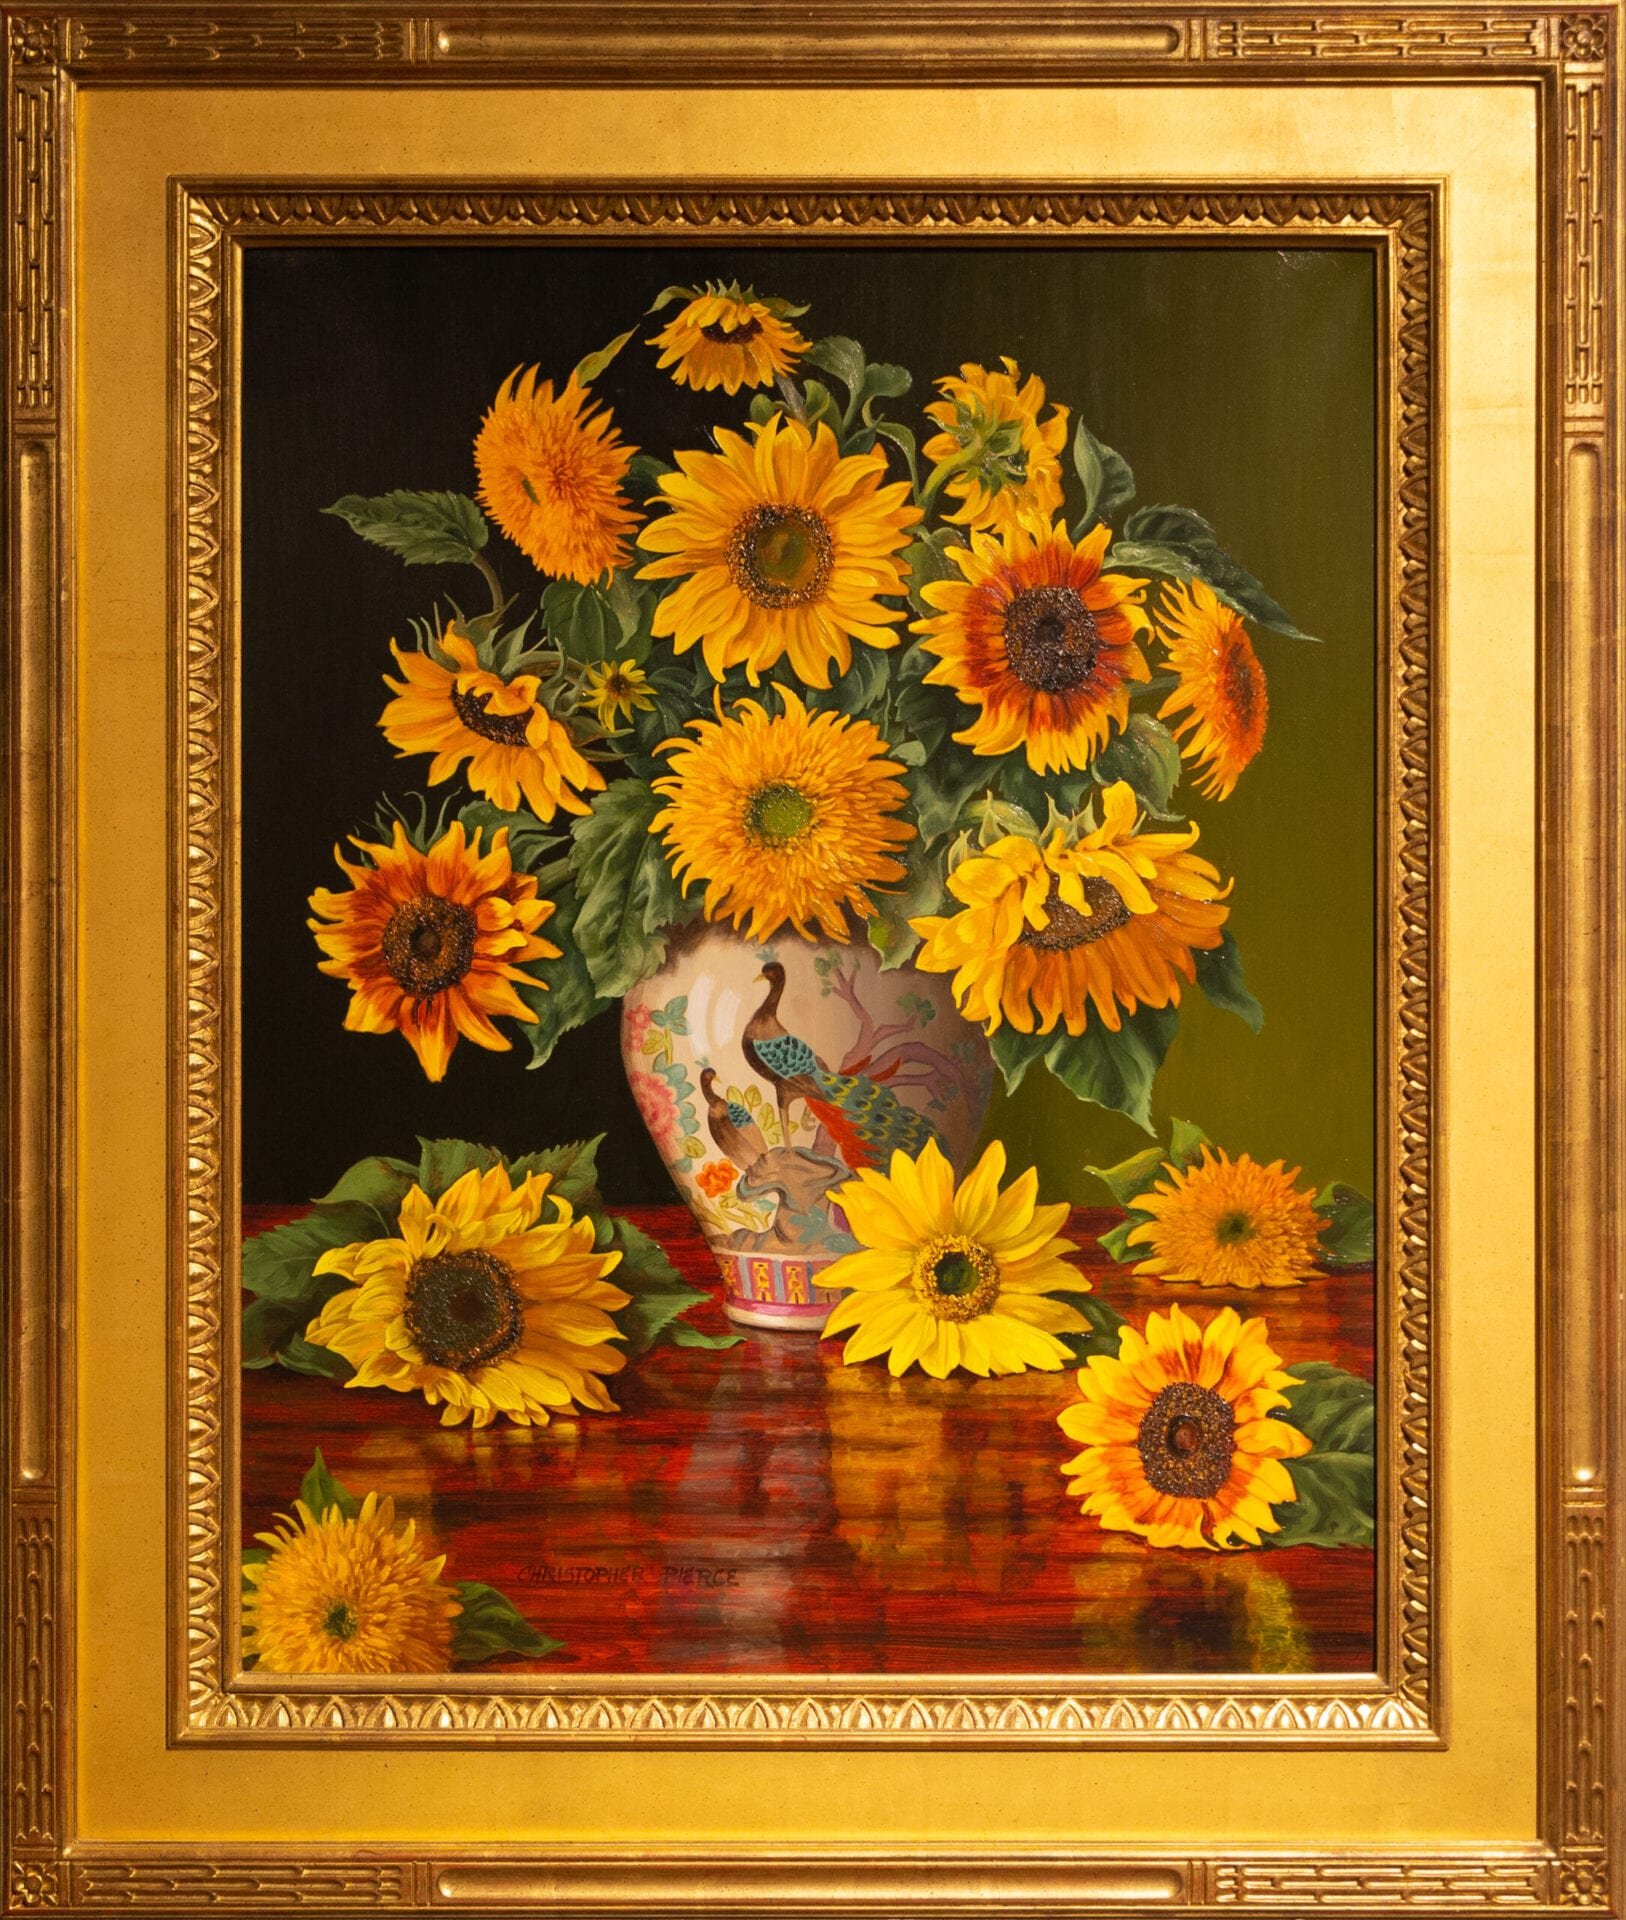 Sunflowers in a Peacock Vase | Christopher Pierce | Oil | 30 x 24""